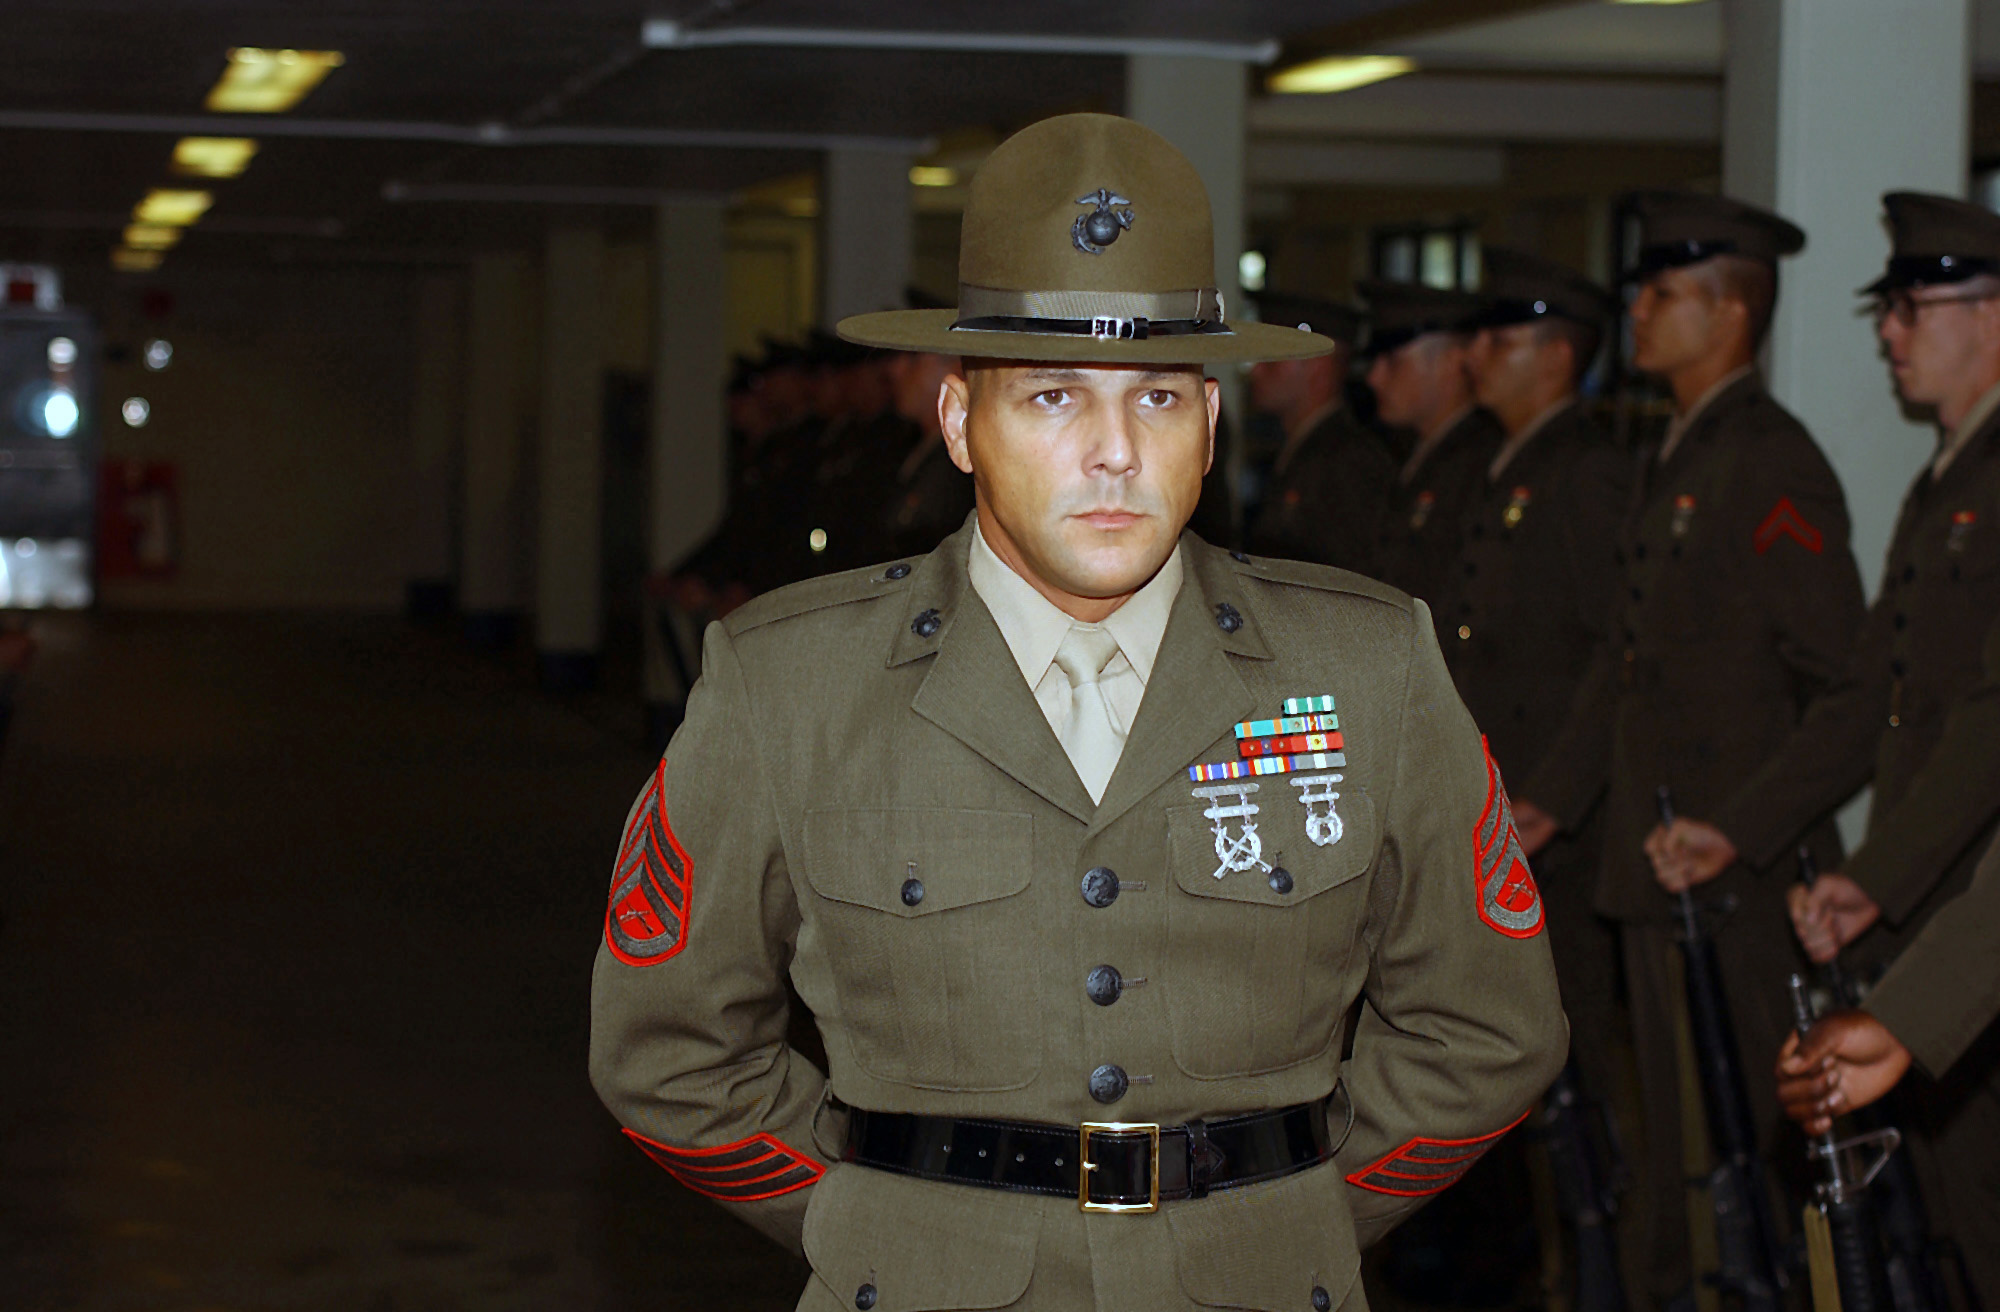 famous corporals in the marine corps 11 things you might not know about the marine corps by david w brown here are 11 things you might not know about the marines 1 there are some pretty famous marines who aren't famous for being marines.